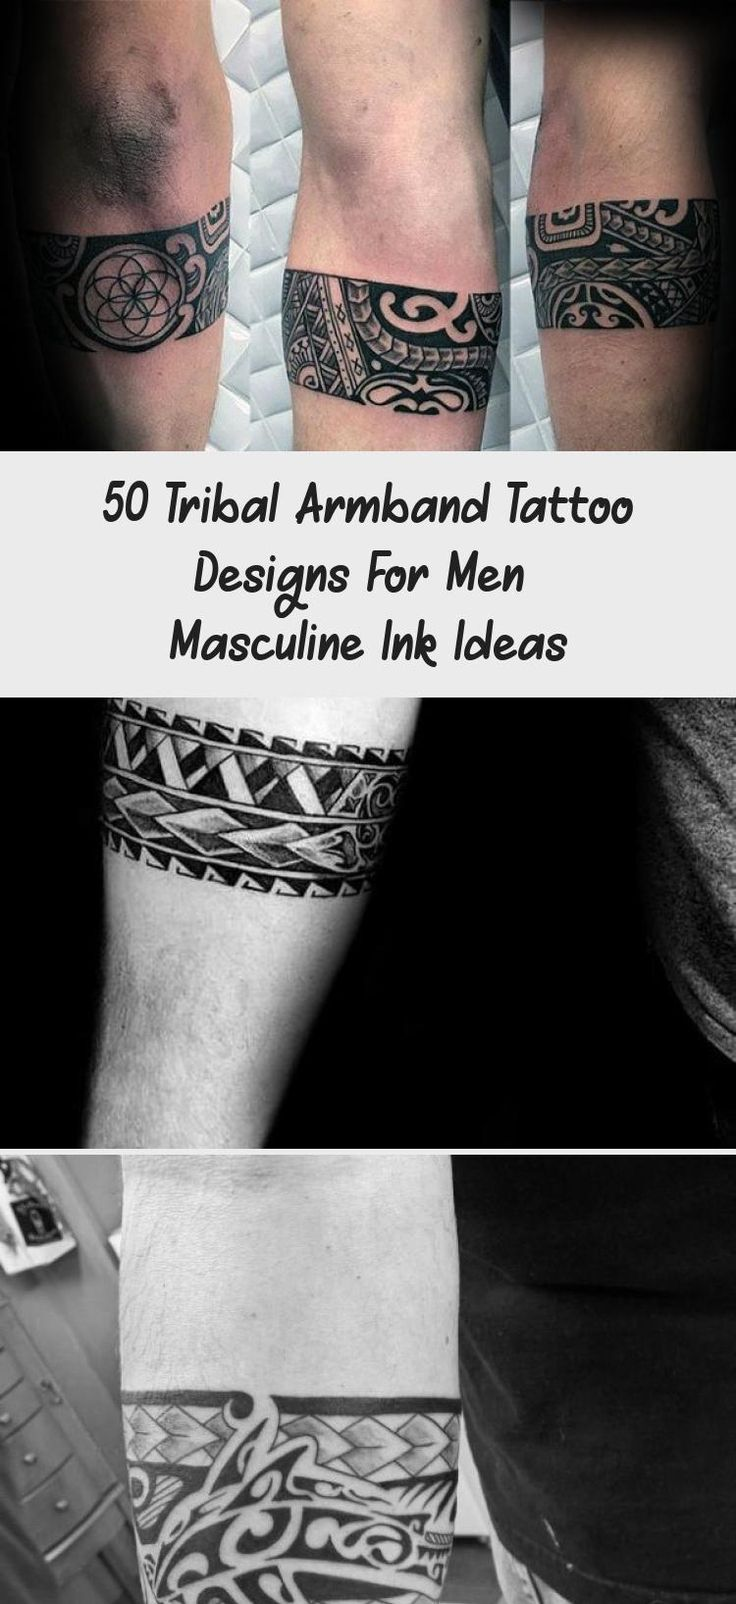 35+ Awesome Tribal armband tattoo designs ideas in 2021